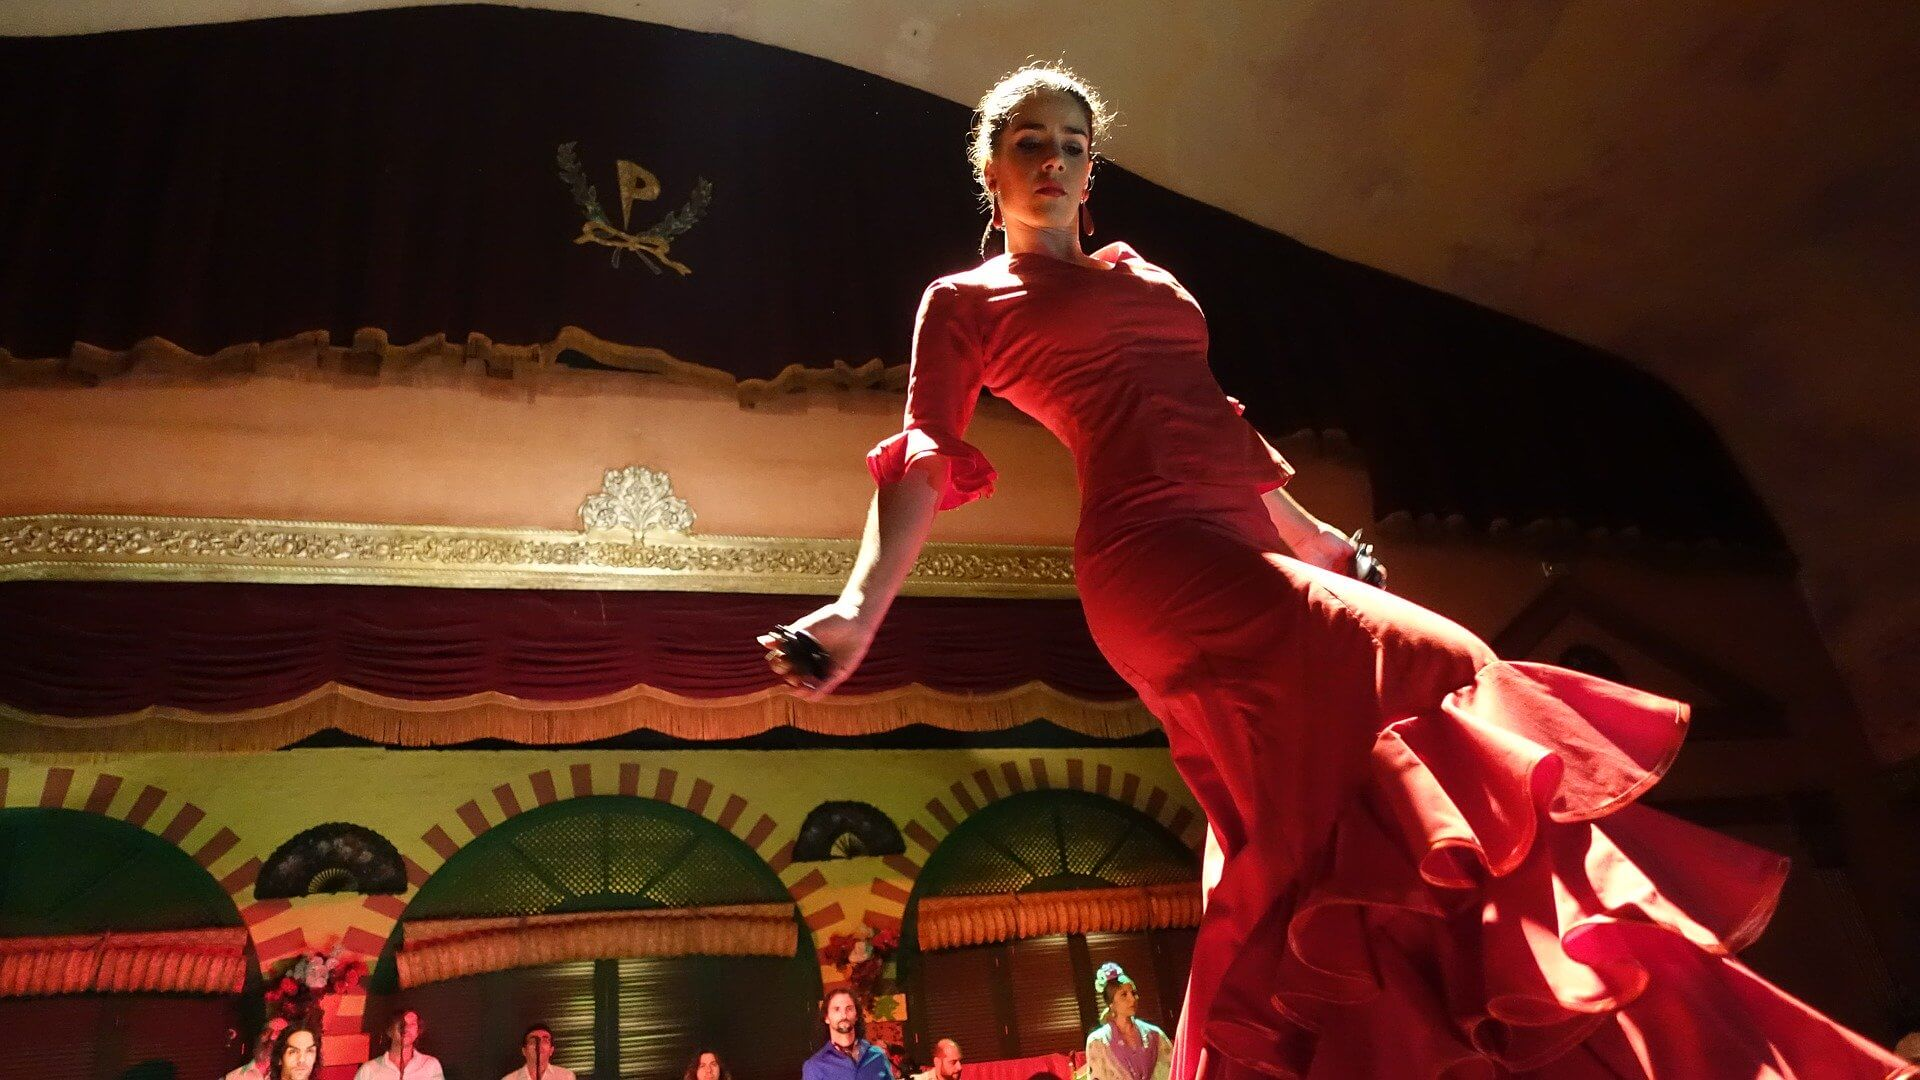 An image of a flamenco dance performer looking focused in her red dress mid performance